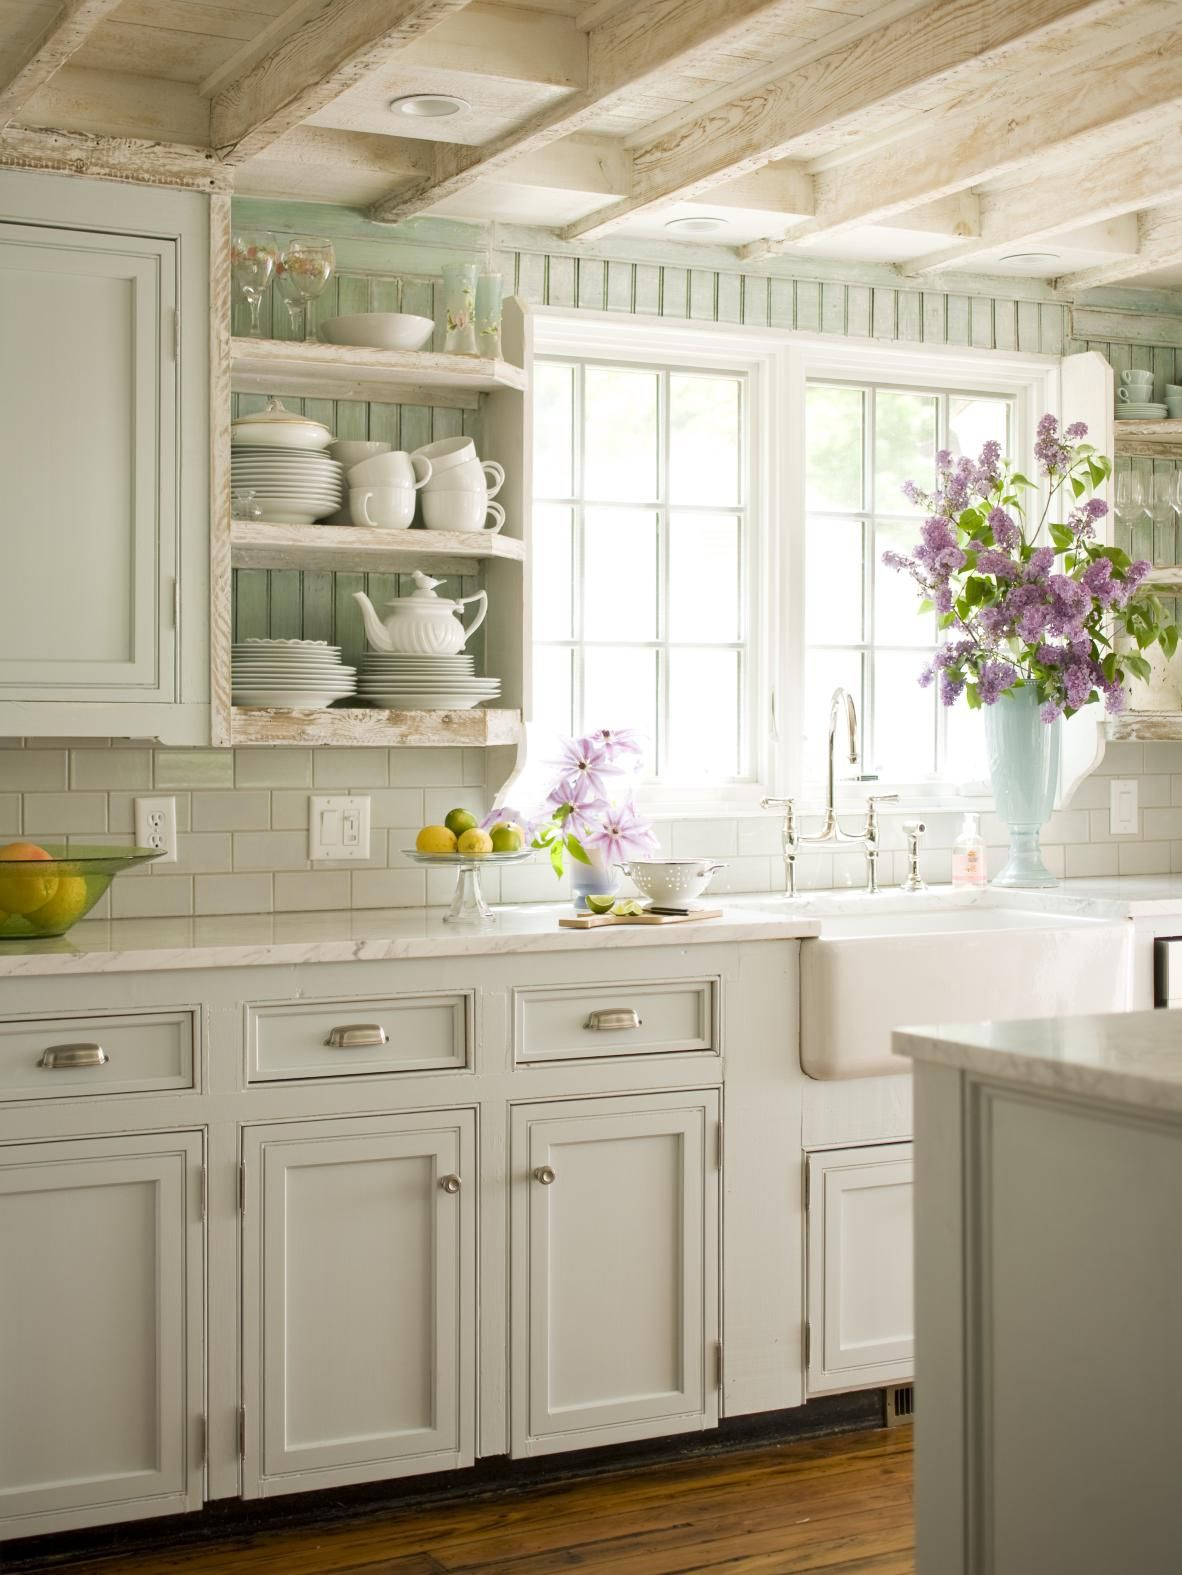 10 ways to get farmhouse style in your kitchen - Home And Garden Kitchen Designs